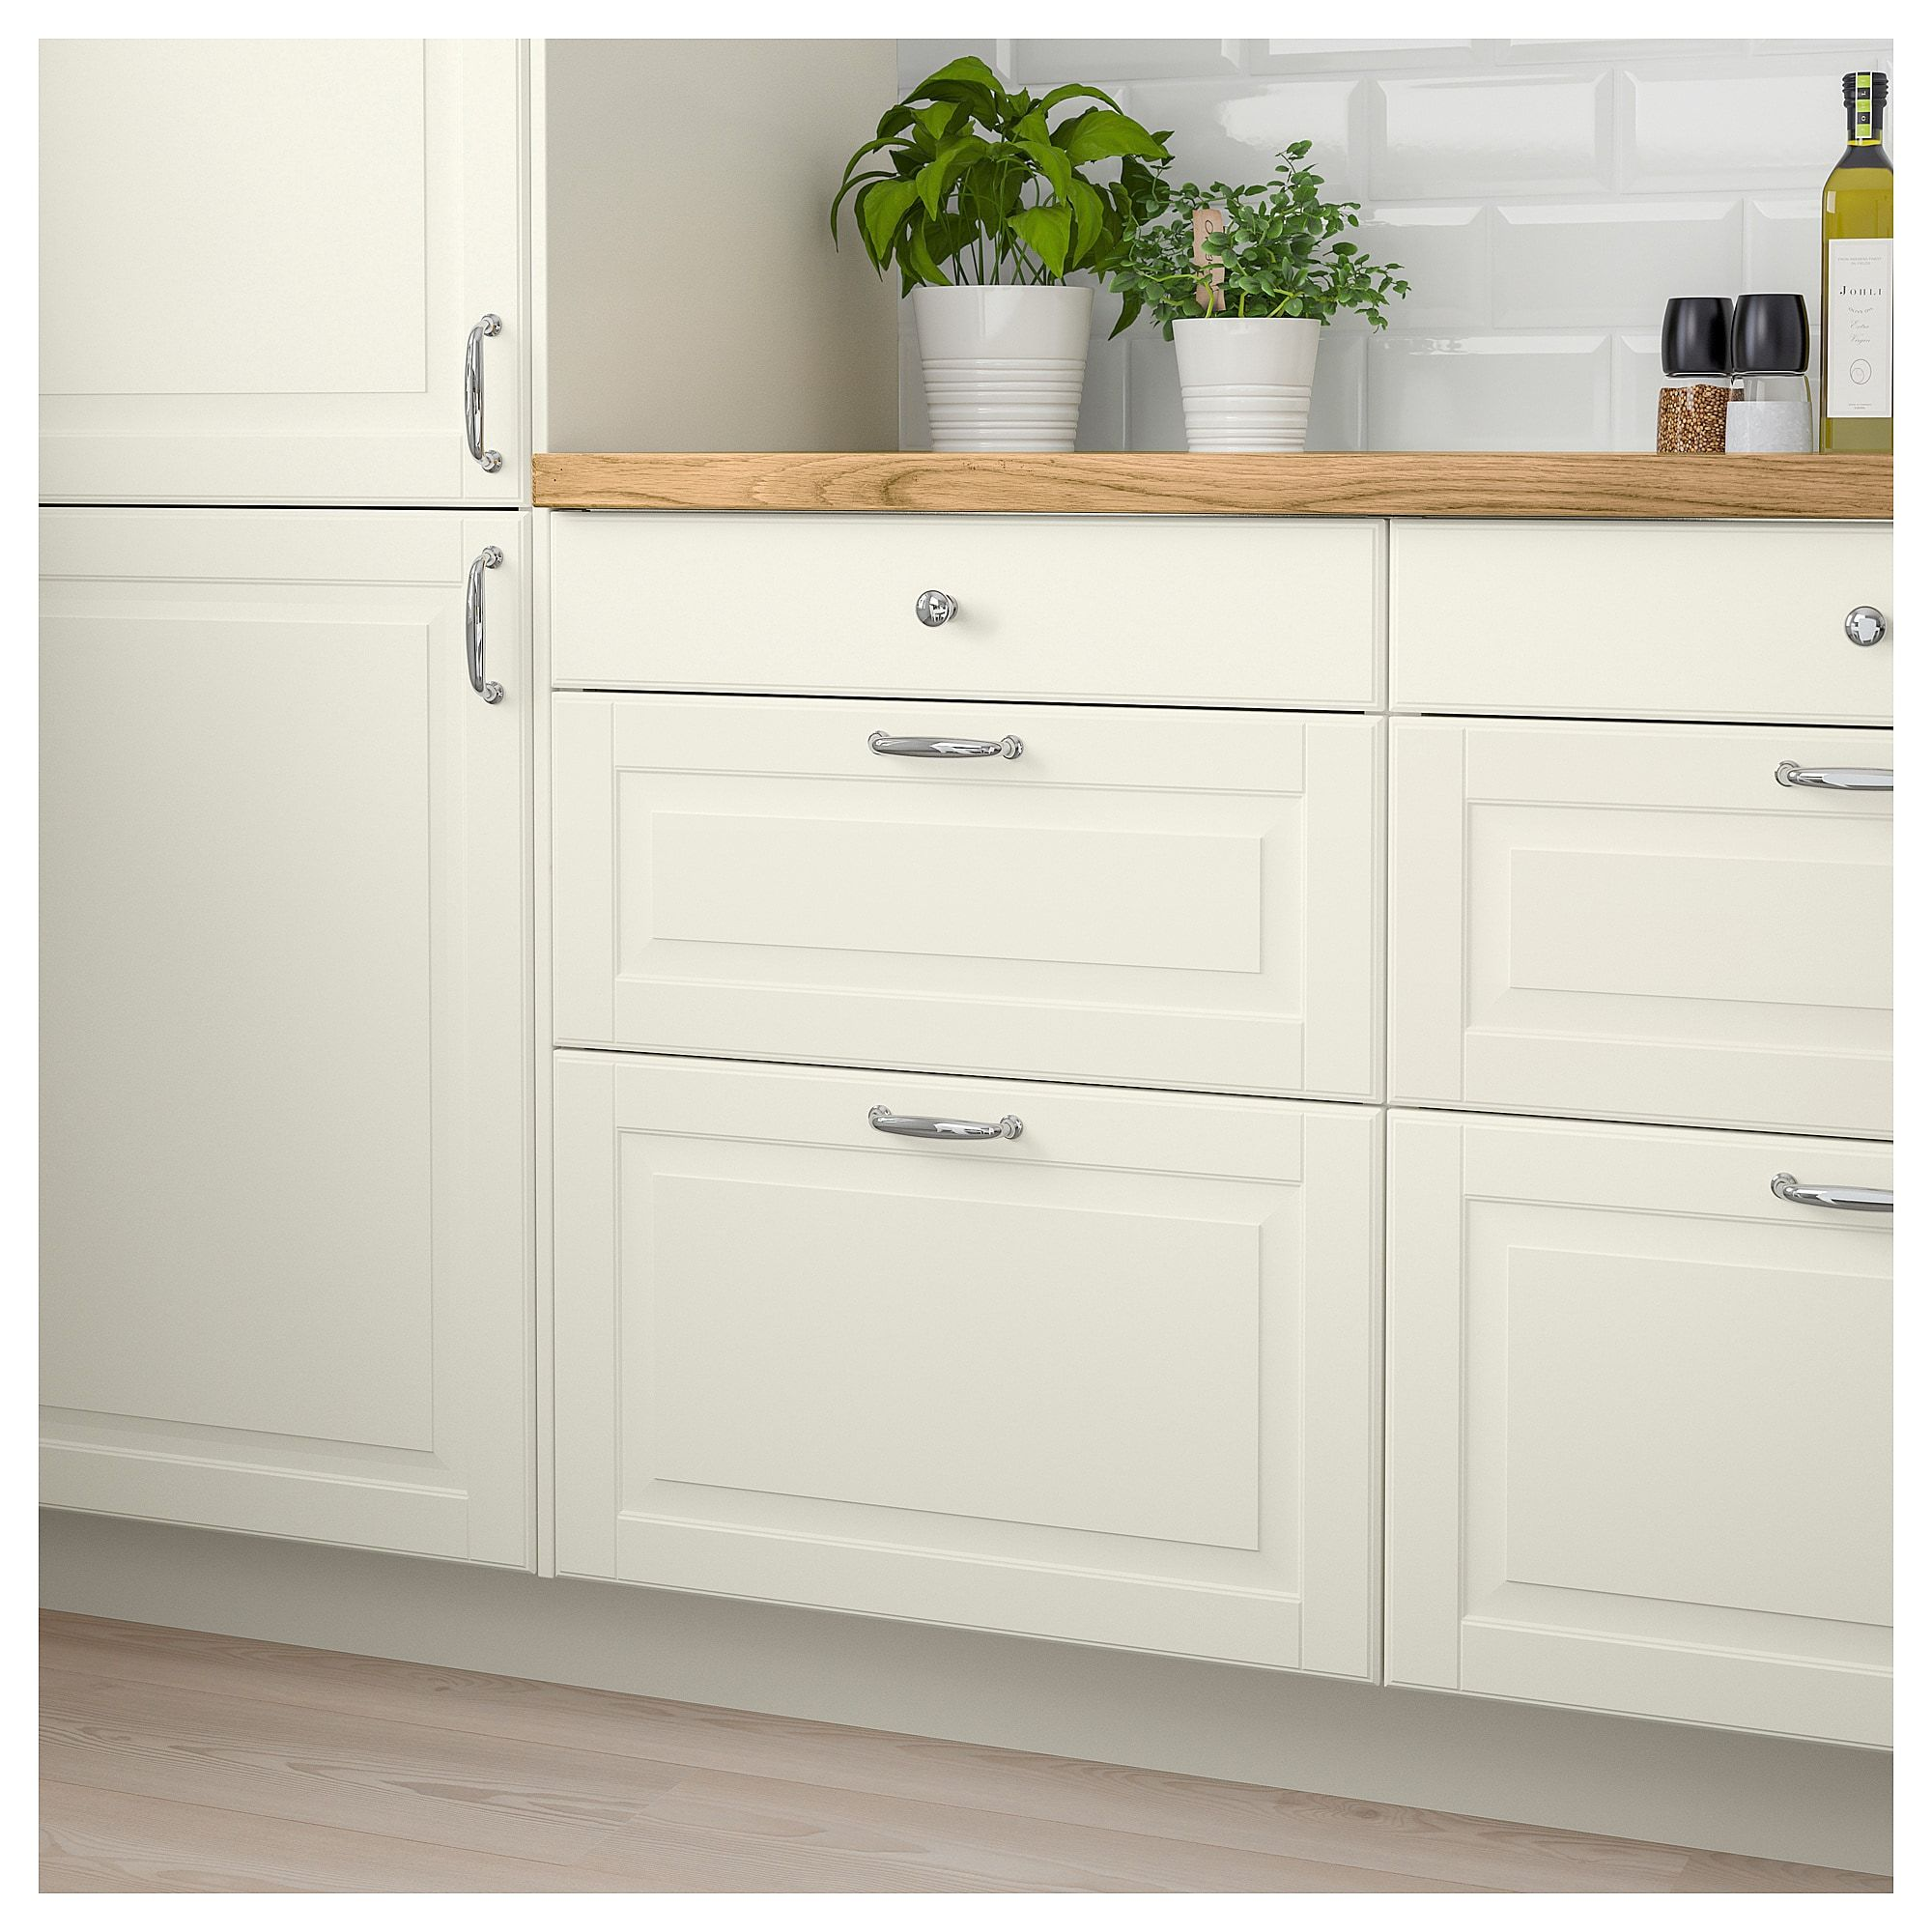 Best Bodbyn Drawer Front Off White 30X10 Kitchen Remodel 640 x 480